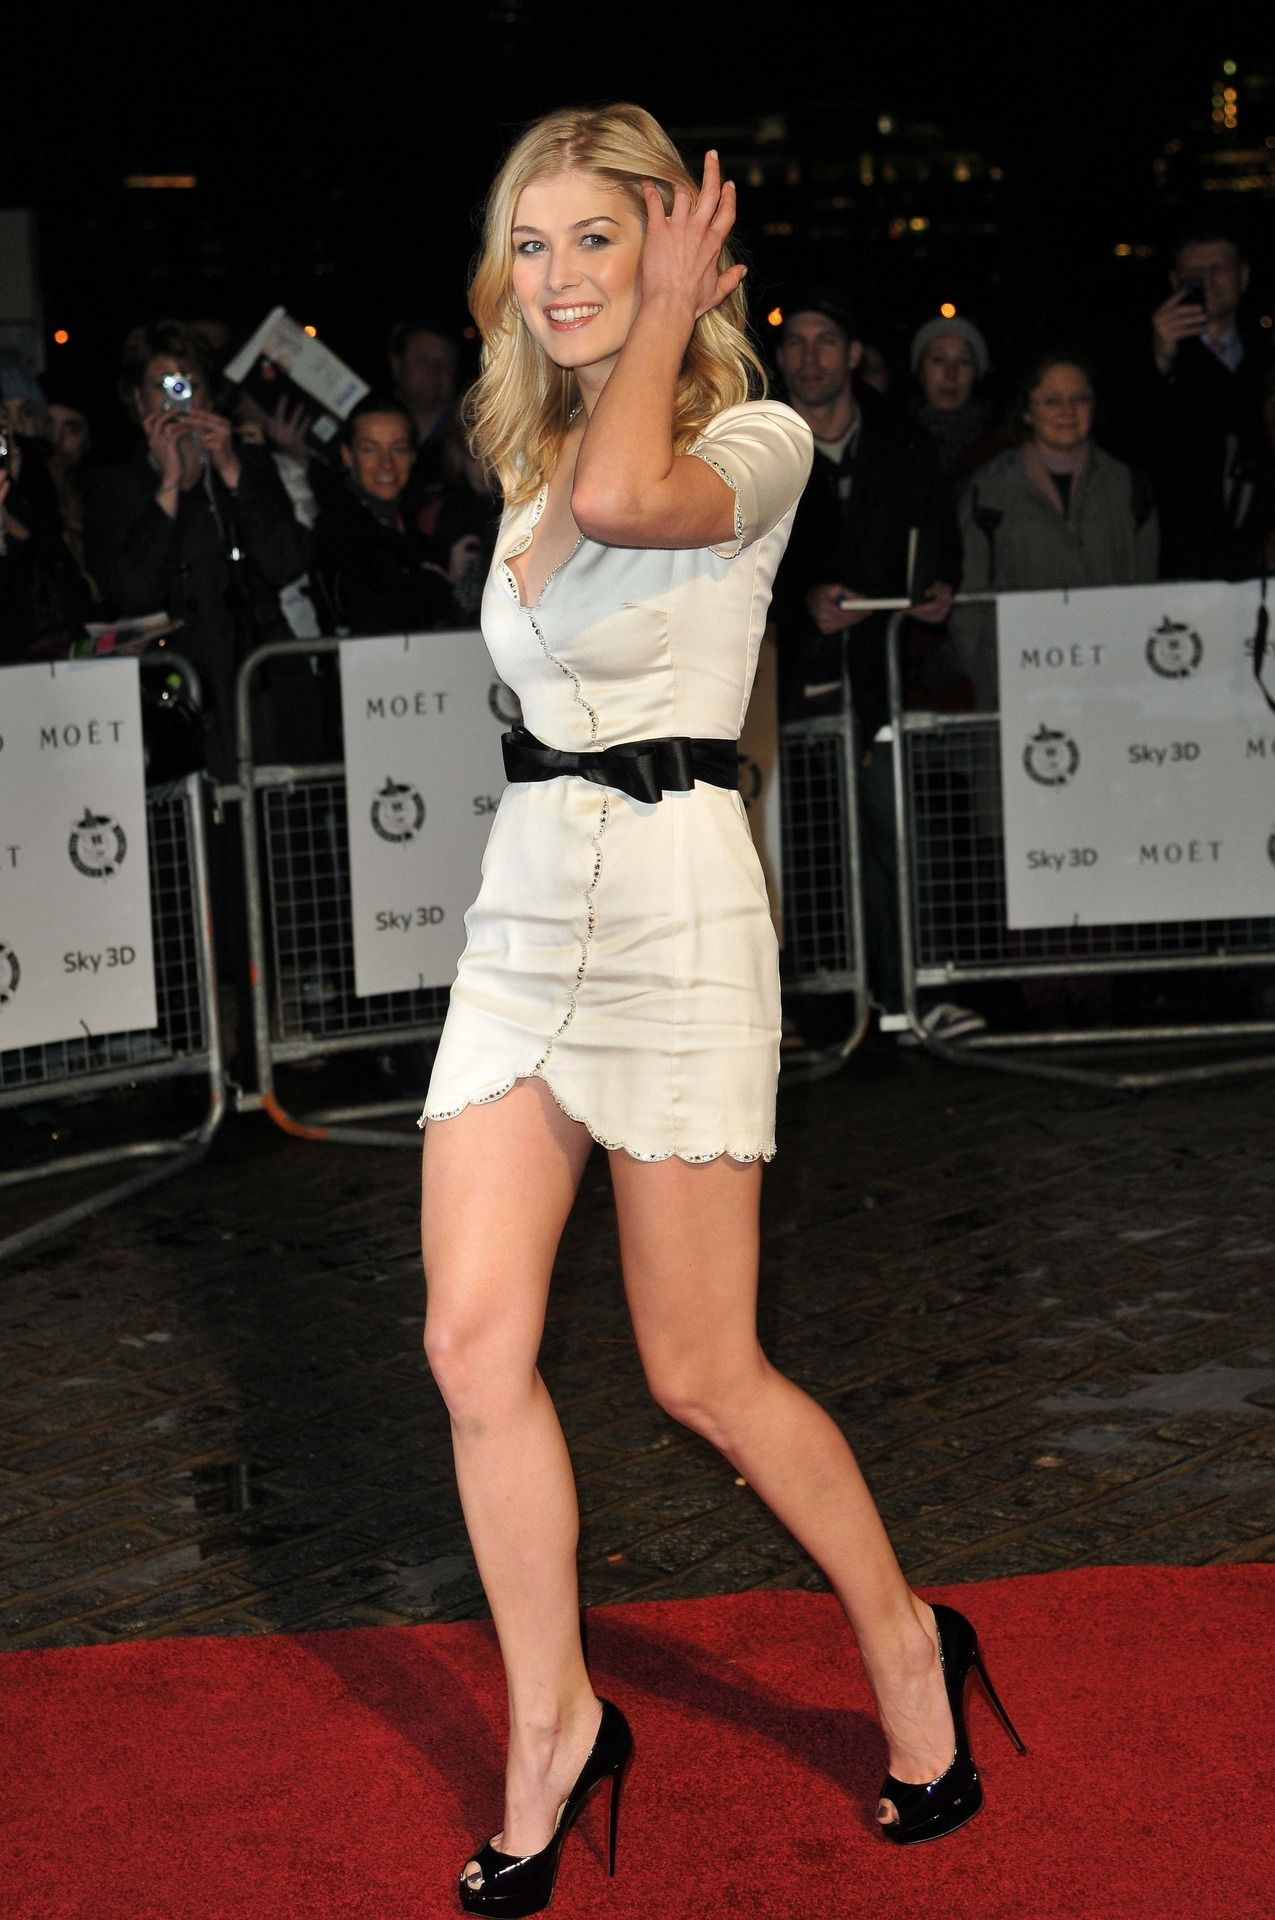 Pin on Sexy Celebrity Legs